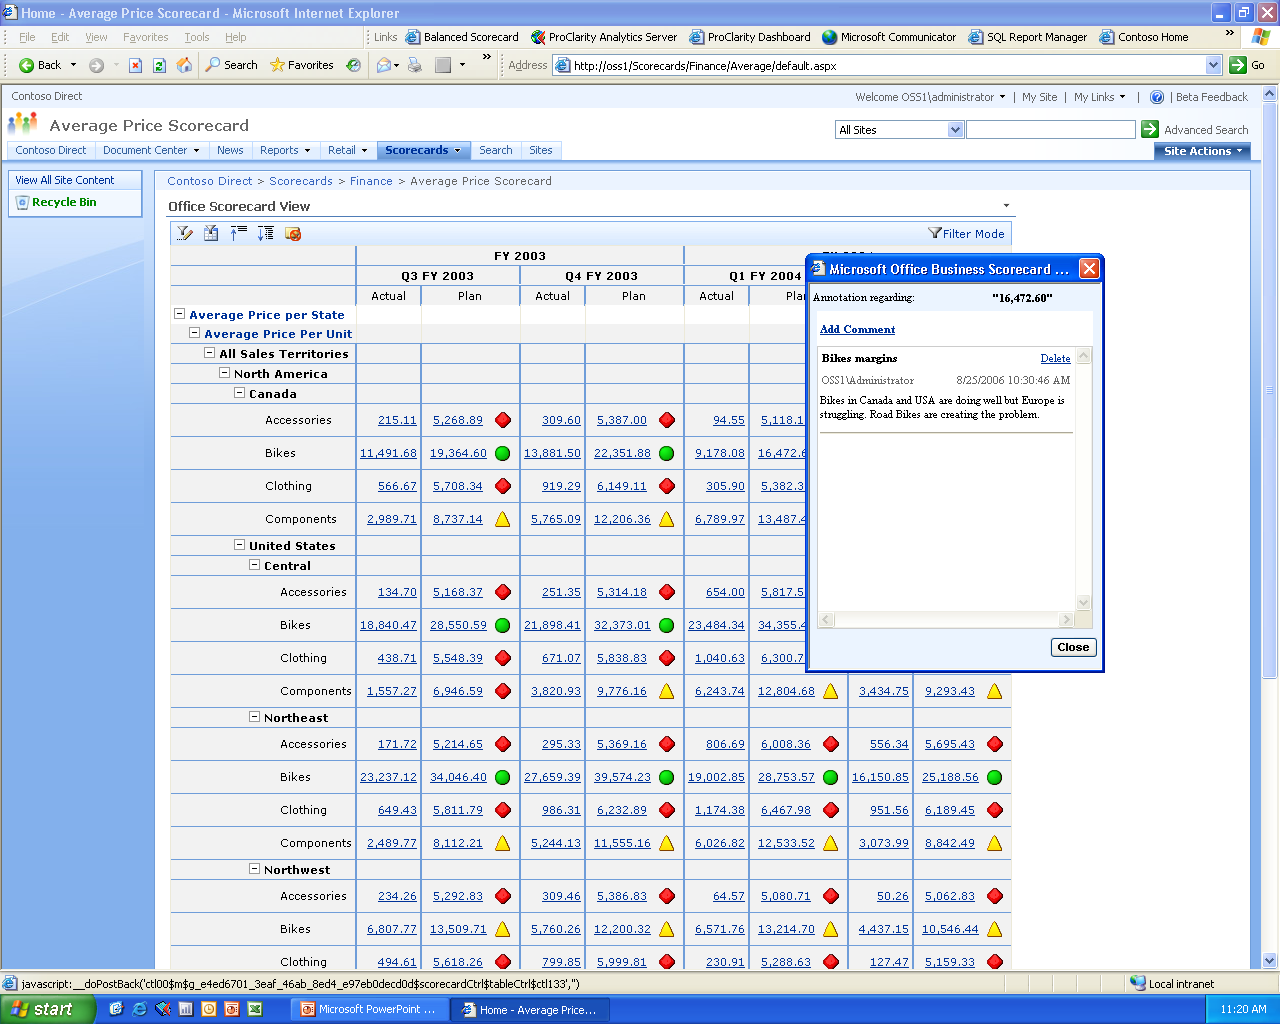 She can also look at the annotations associated to the KPIs.